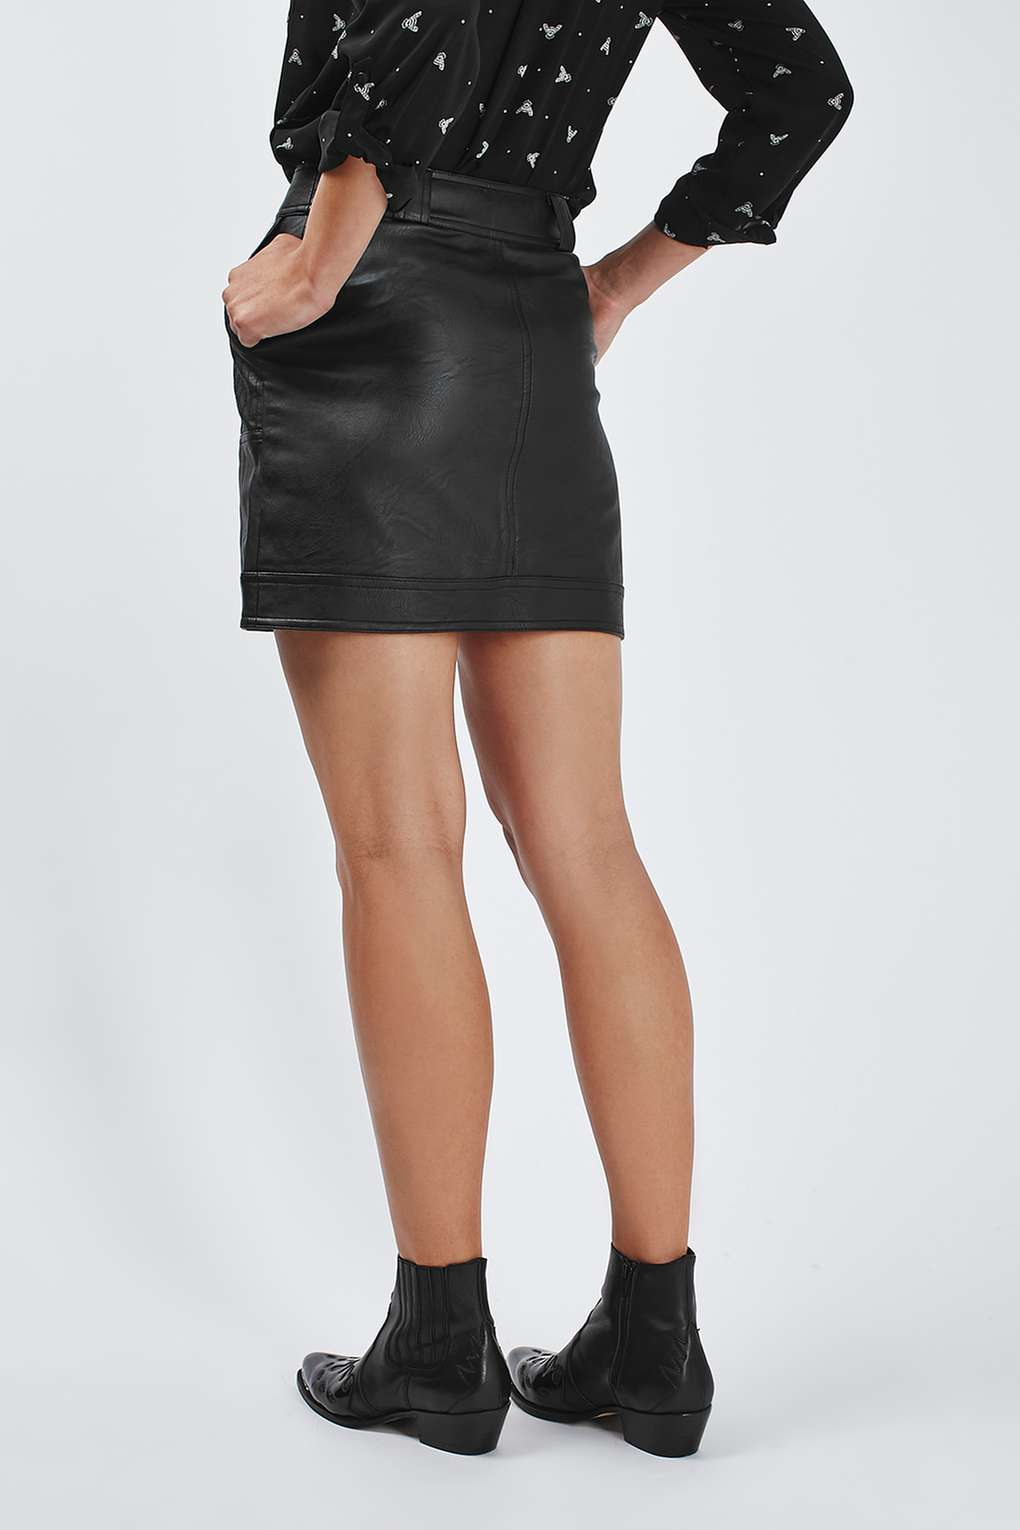 topshop stitch detailed leather look mini skirt in black